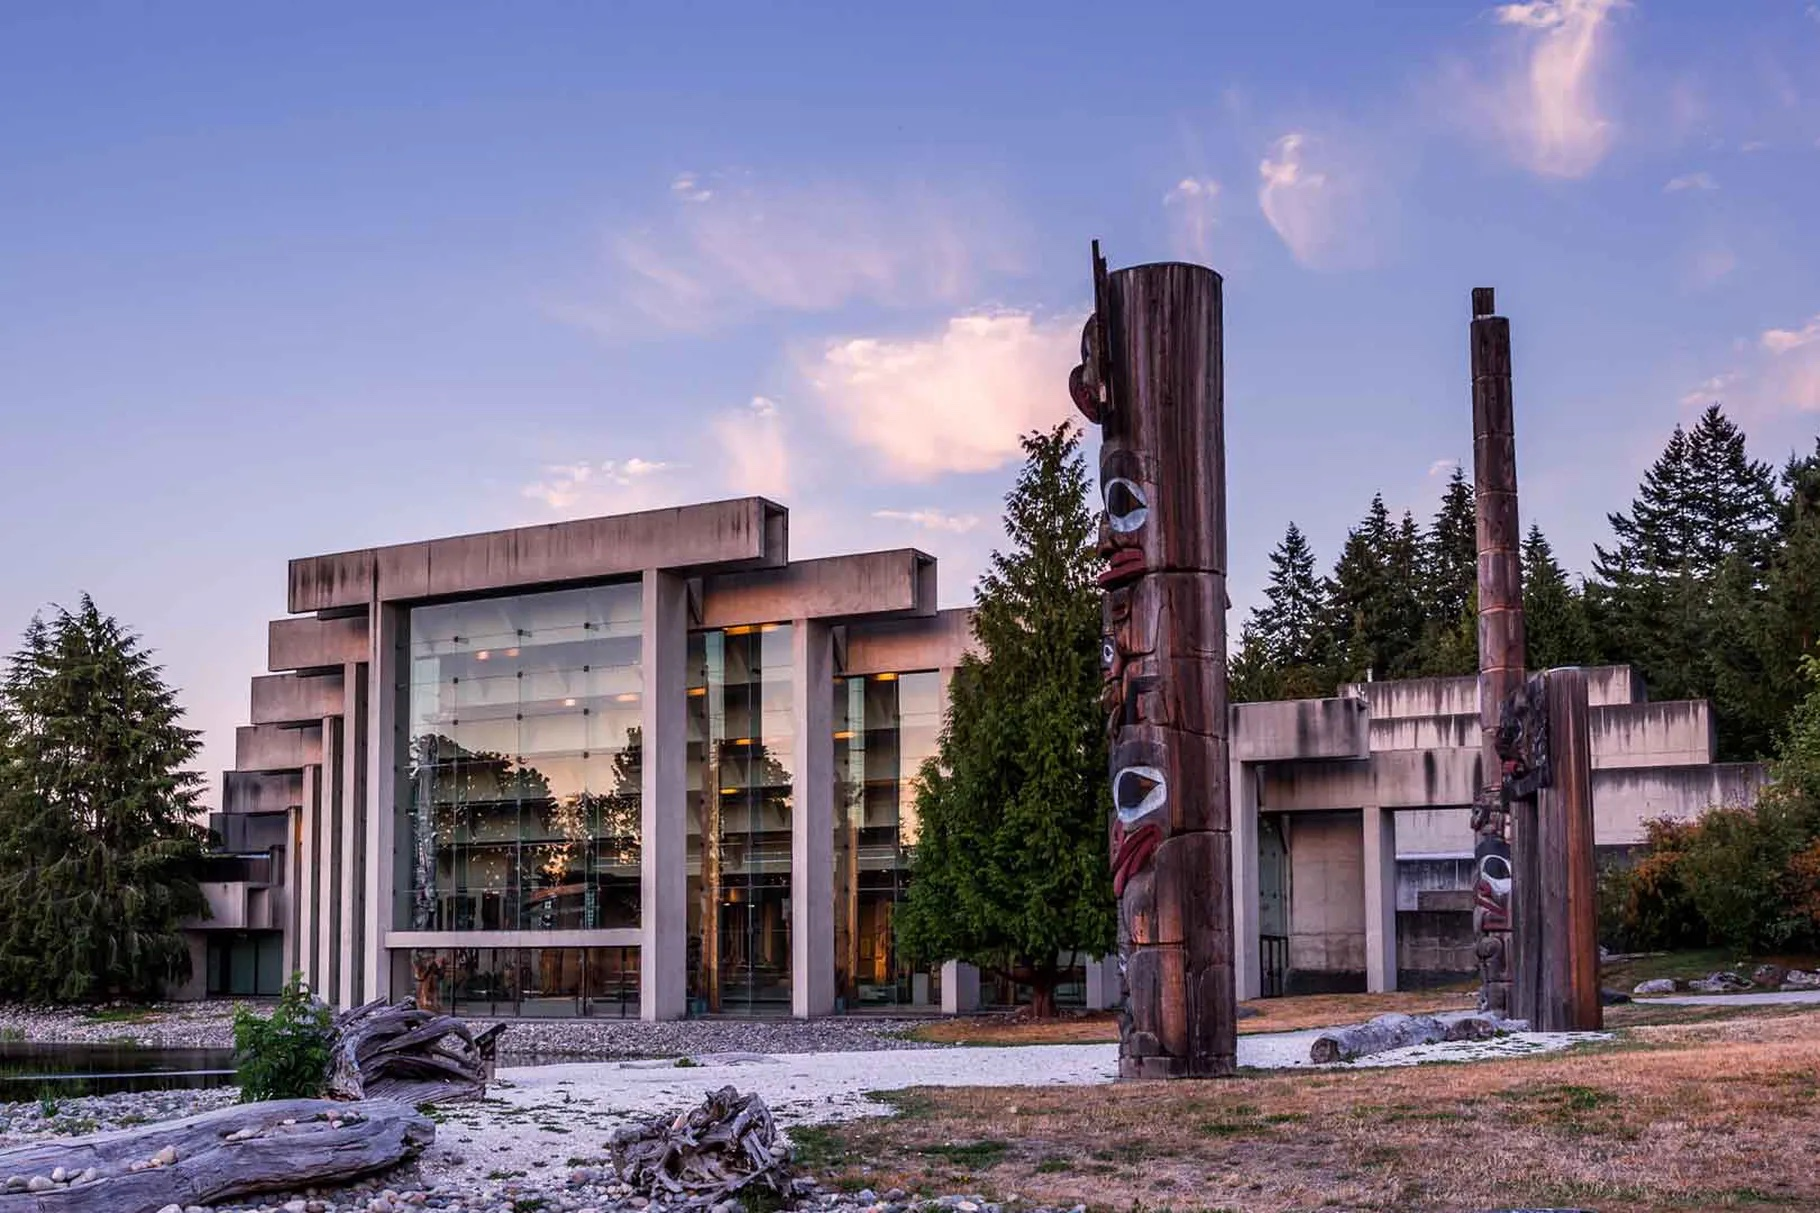 The grounds and reflecting pool of the Museum of Anthropology at the University of British Columbia, designed by Cornelia Oberlander / Museum of Anthropology at the University of British Columbia